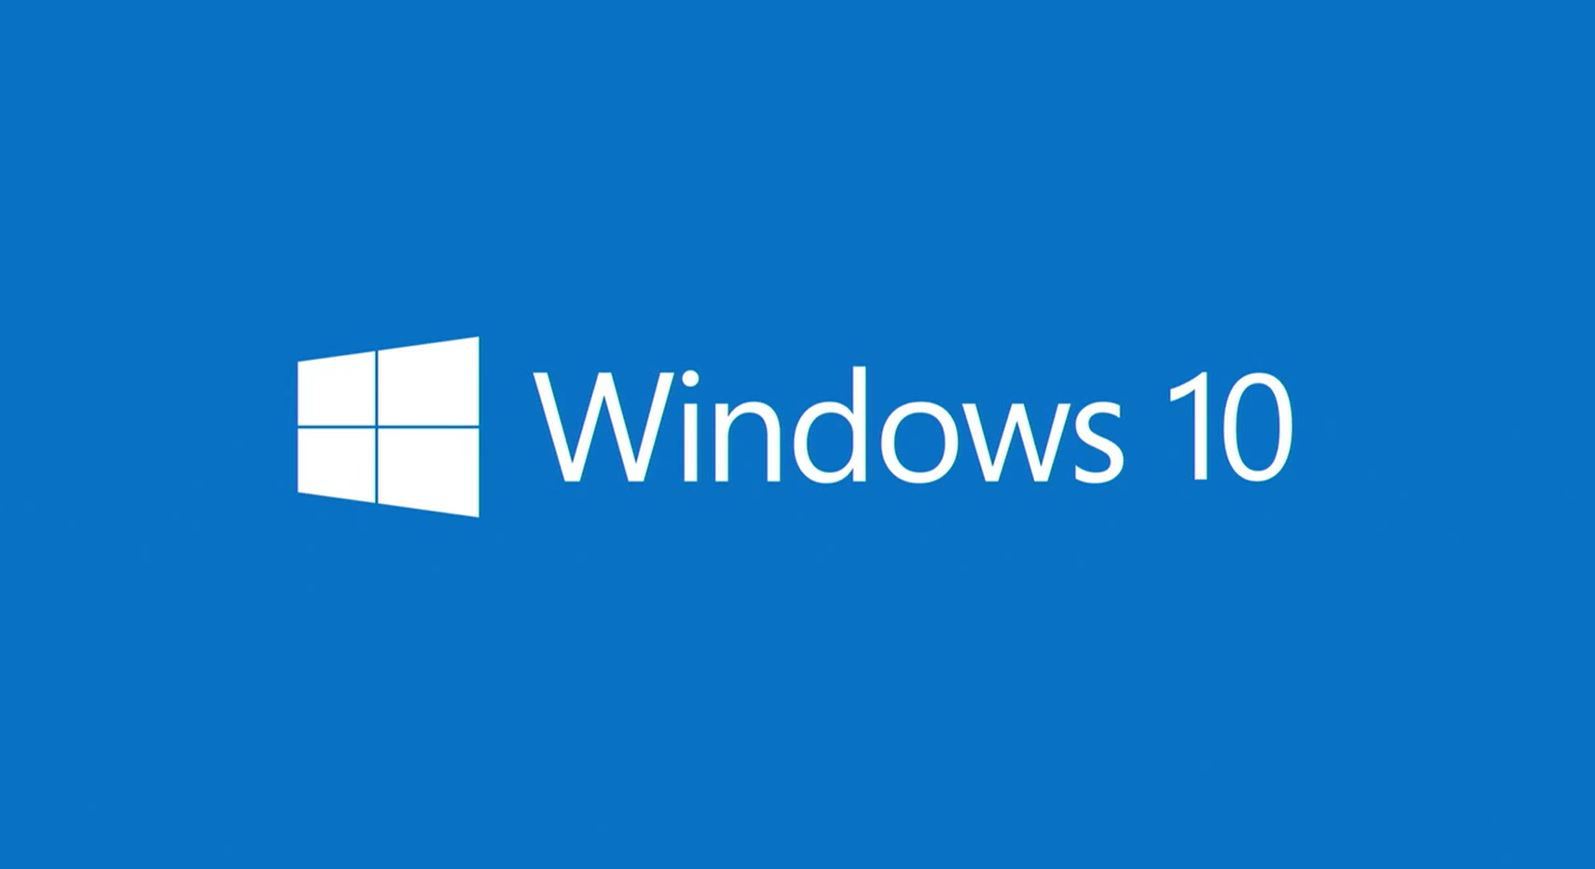 Bad News For All the users of Windows 10